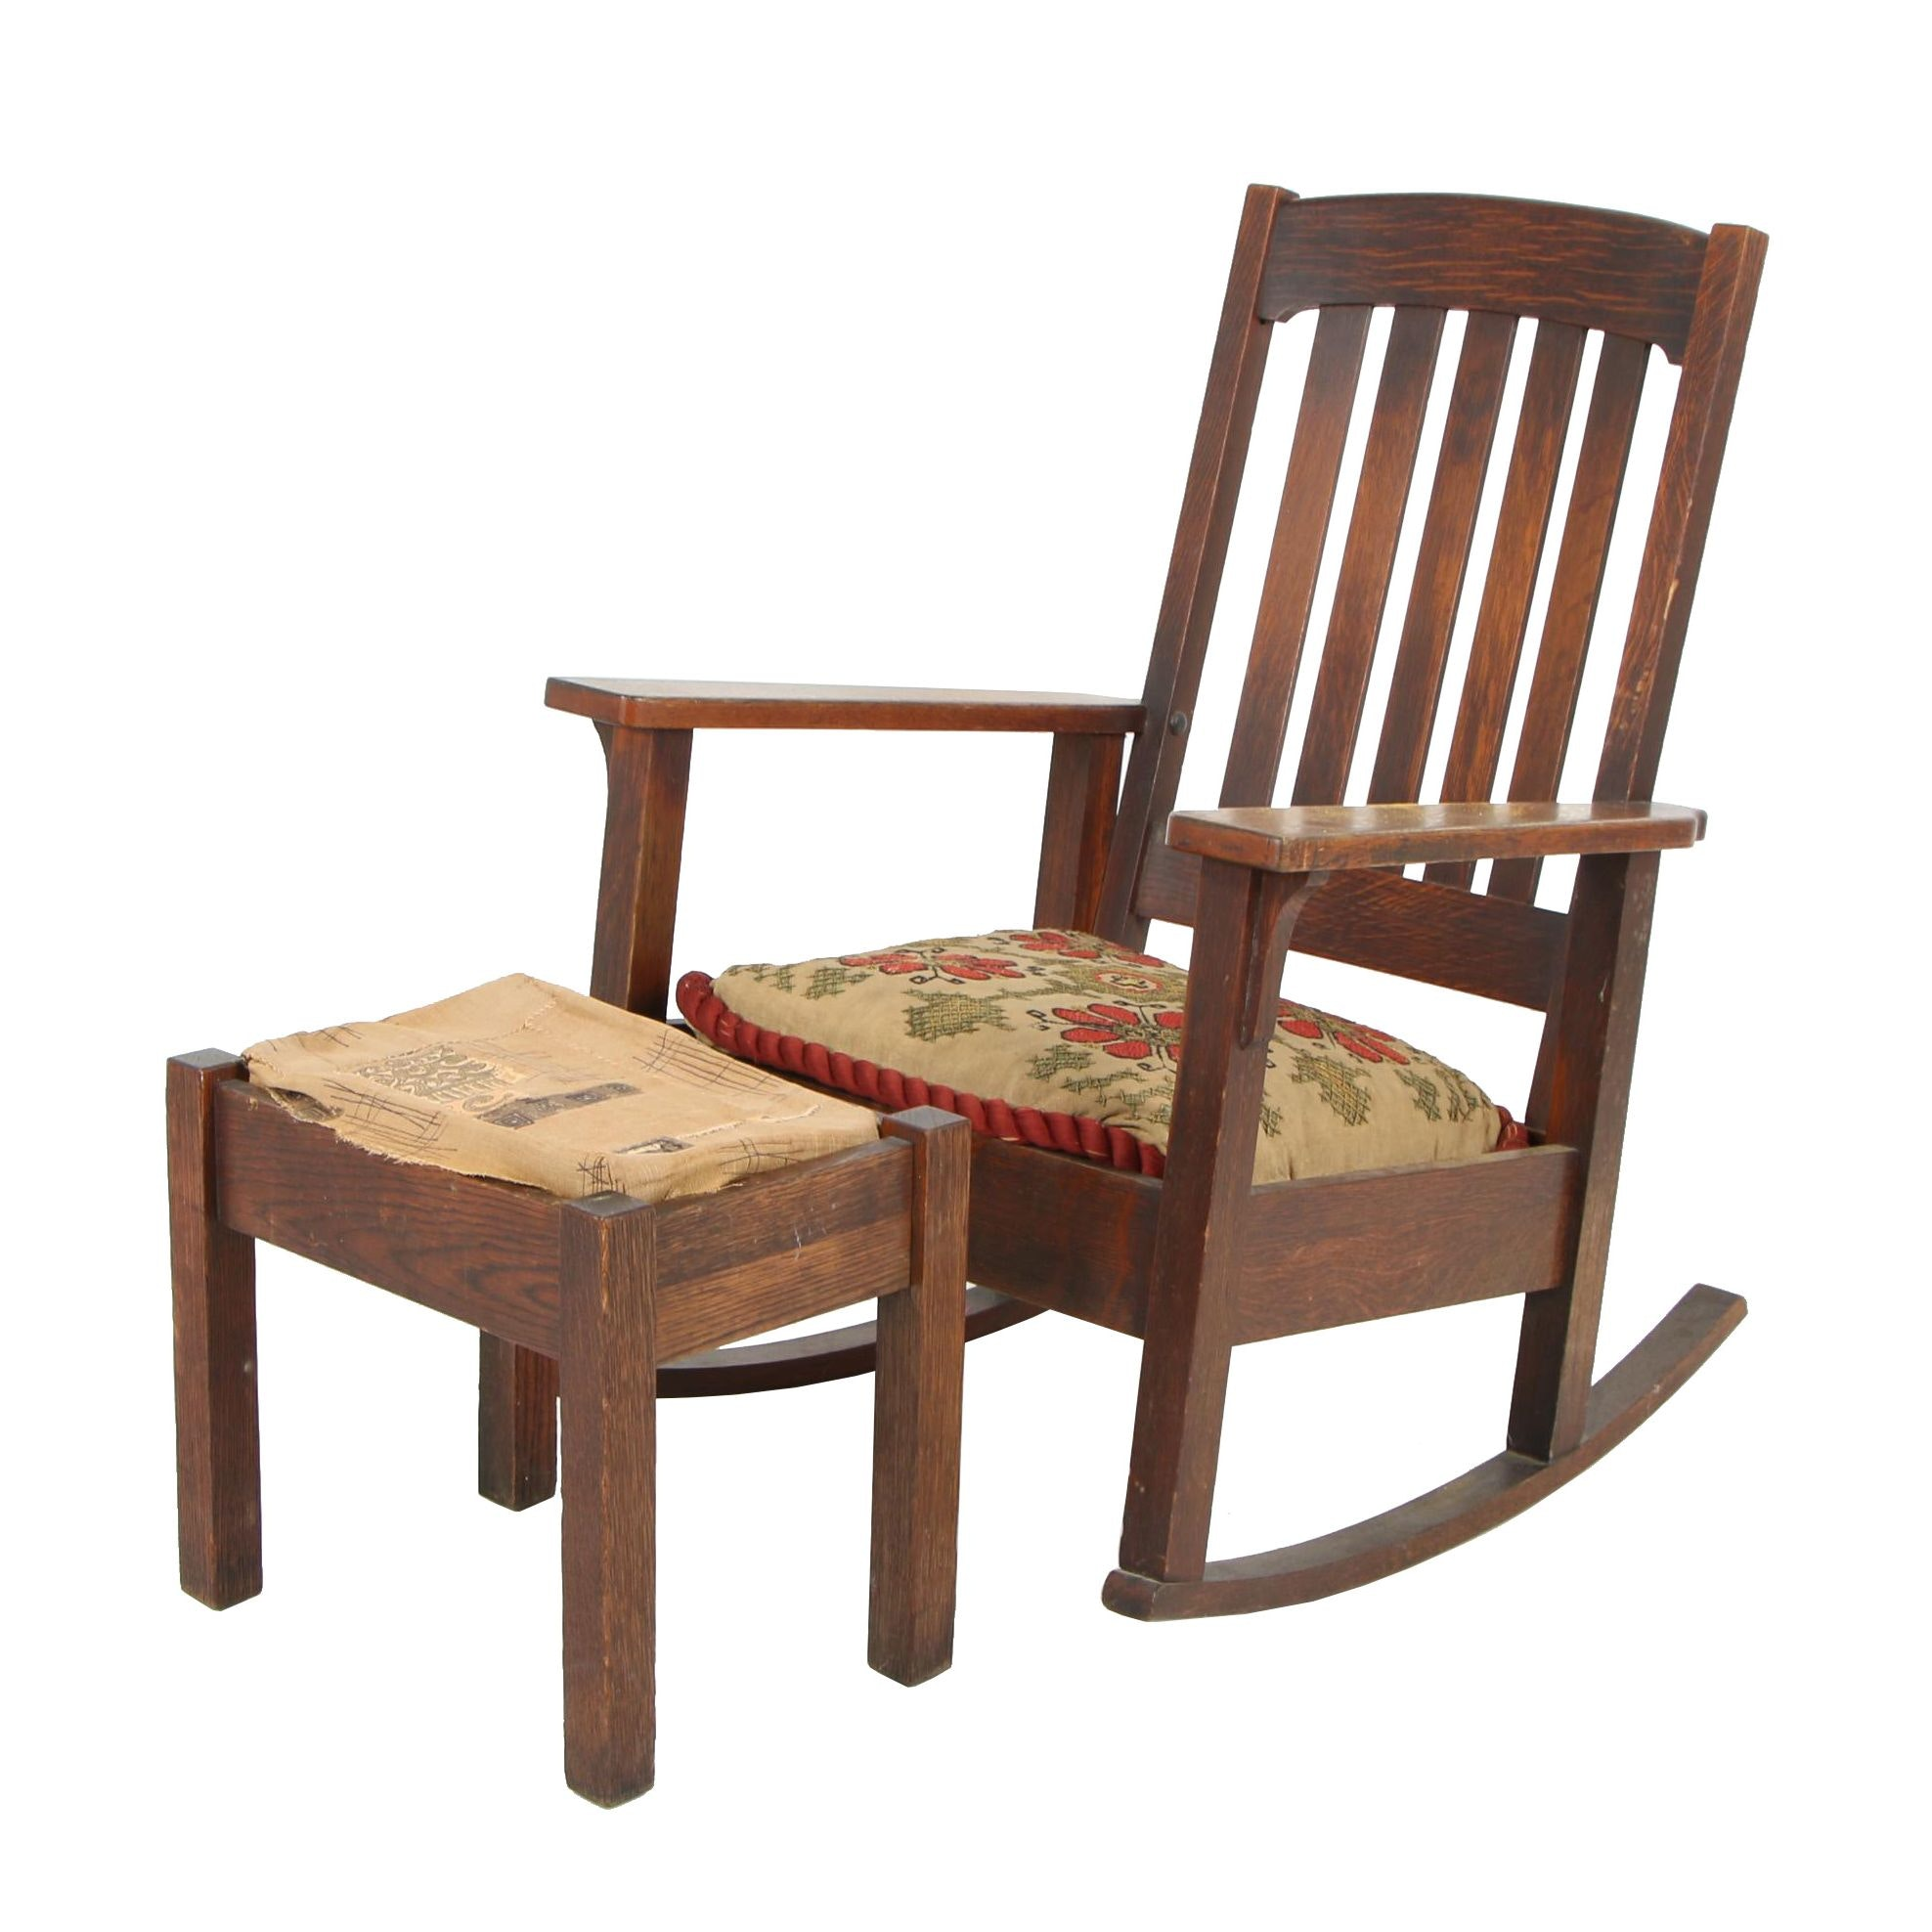 Stickley Bros Co. Arts and Crafts Style Rocking Chair and Stool